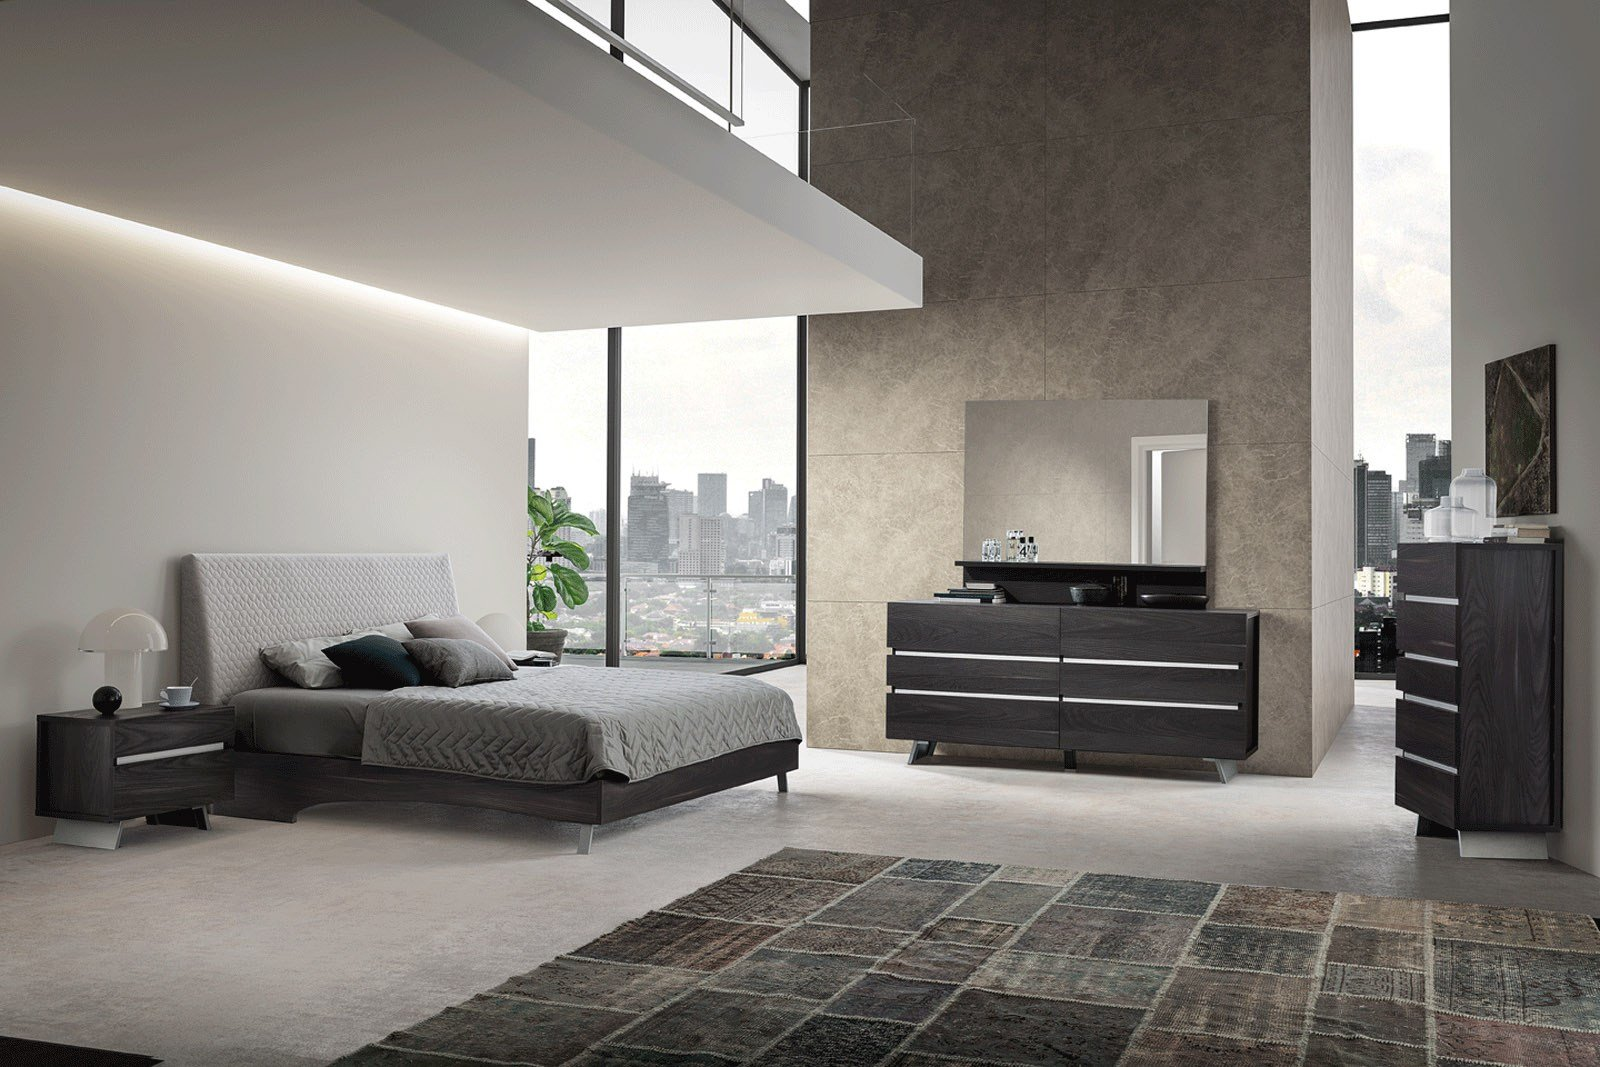 Best Made In Italy Wood Contemporary Bedroom Design Flint With Pictures